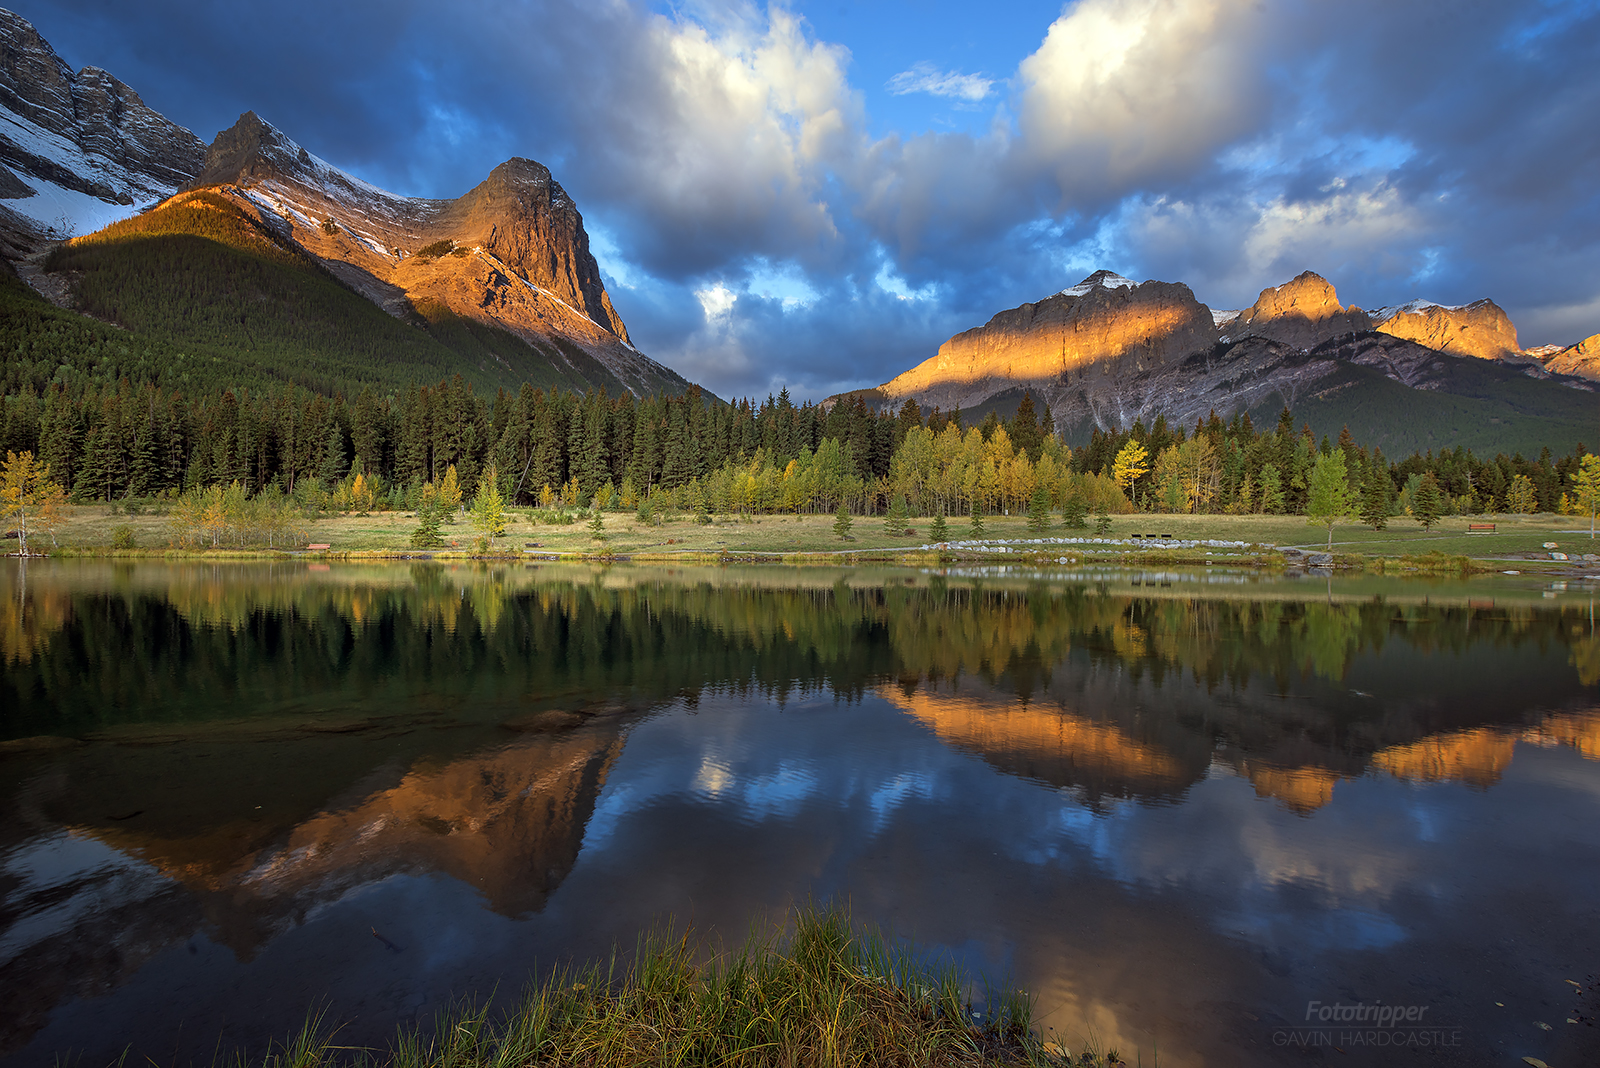 Ha Ling Peak, Canmore, Alberta photography workshops in Banff